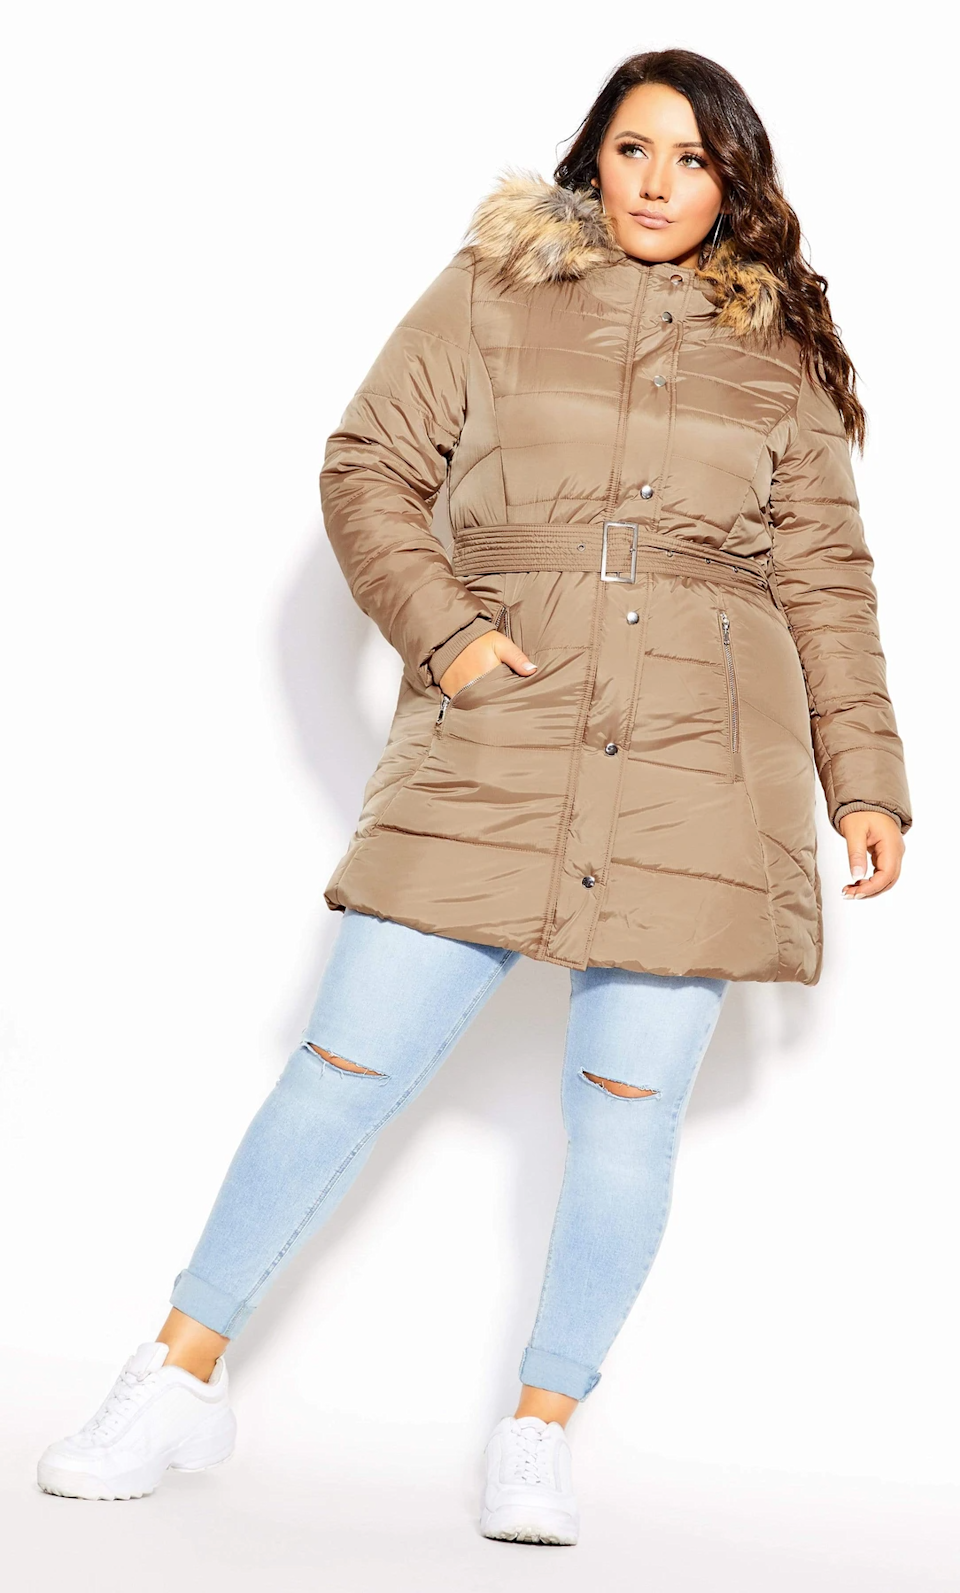 "<br><br><strong>City Chic</strong> Longline Puffa Jacket, $, available at <a href=""https://go.skimresources.com/?id=30283X879131&url=https%3A%2F%2Fcoedition.com%2Fcollections%2Fclothing-coats-jackets-coats%2Fproducts%2F200084taupe"" rel=""nofollow noopener"" target=""_blank"" data-ylk=""slk:CoEdition"" class=""link rapid-noclick-resp"">CoEdition</a>"